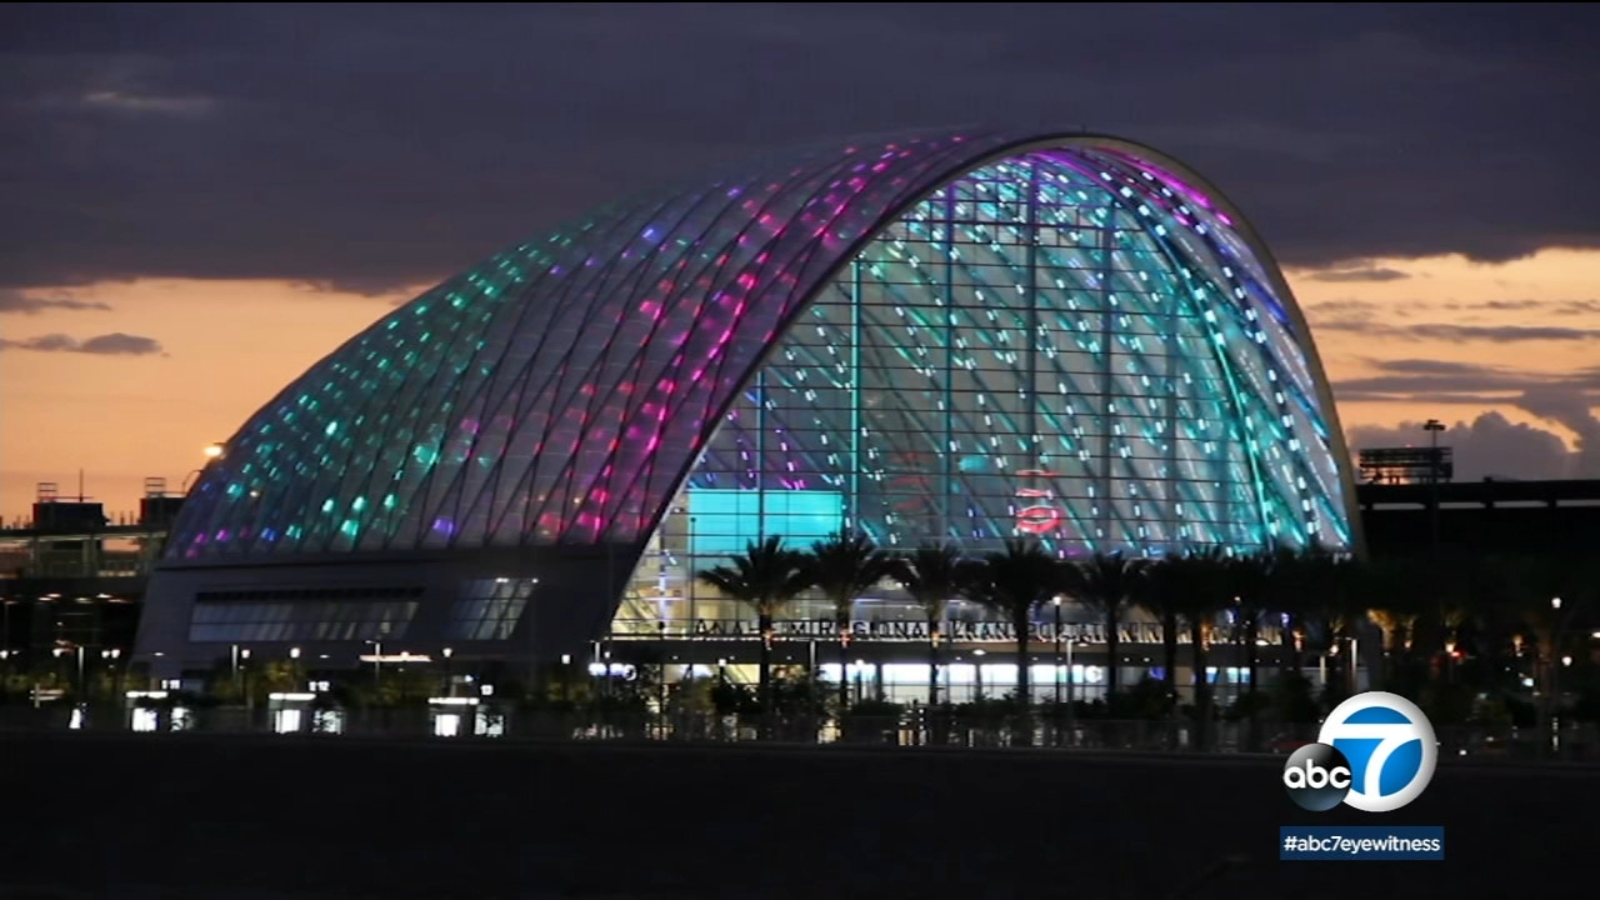 Anaheim ARTIC transport hub: Early predictions were ambitious, new improvement plans underway